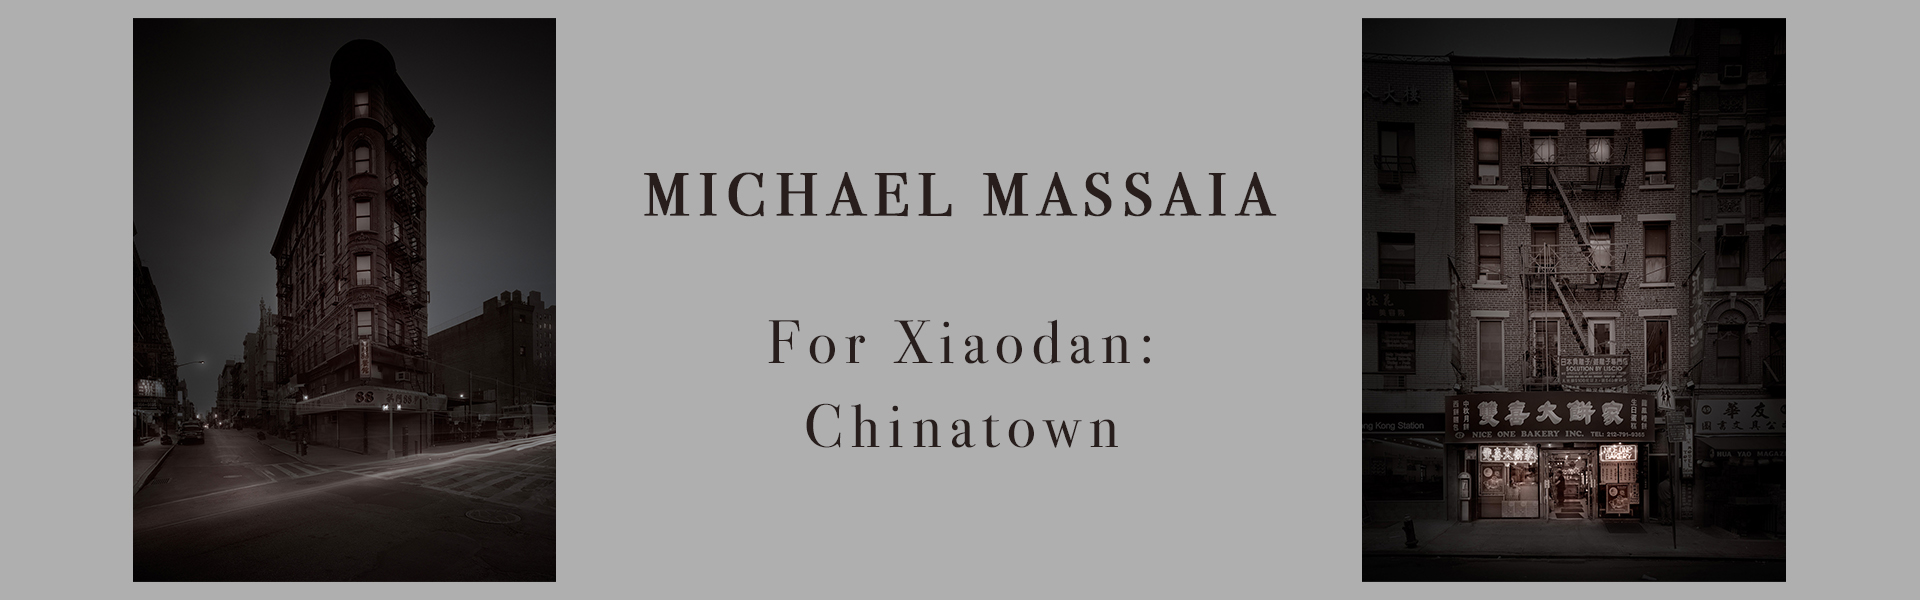 Michael Massaia, chinatown, contemporary black and white photography